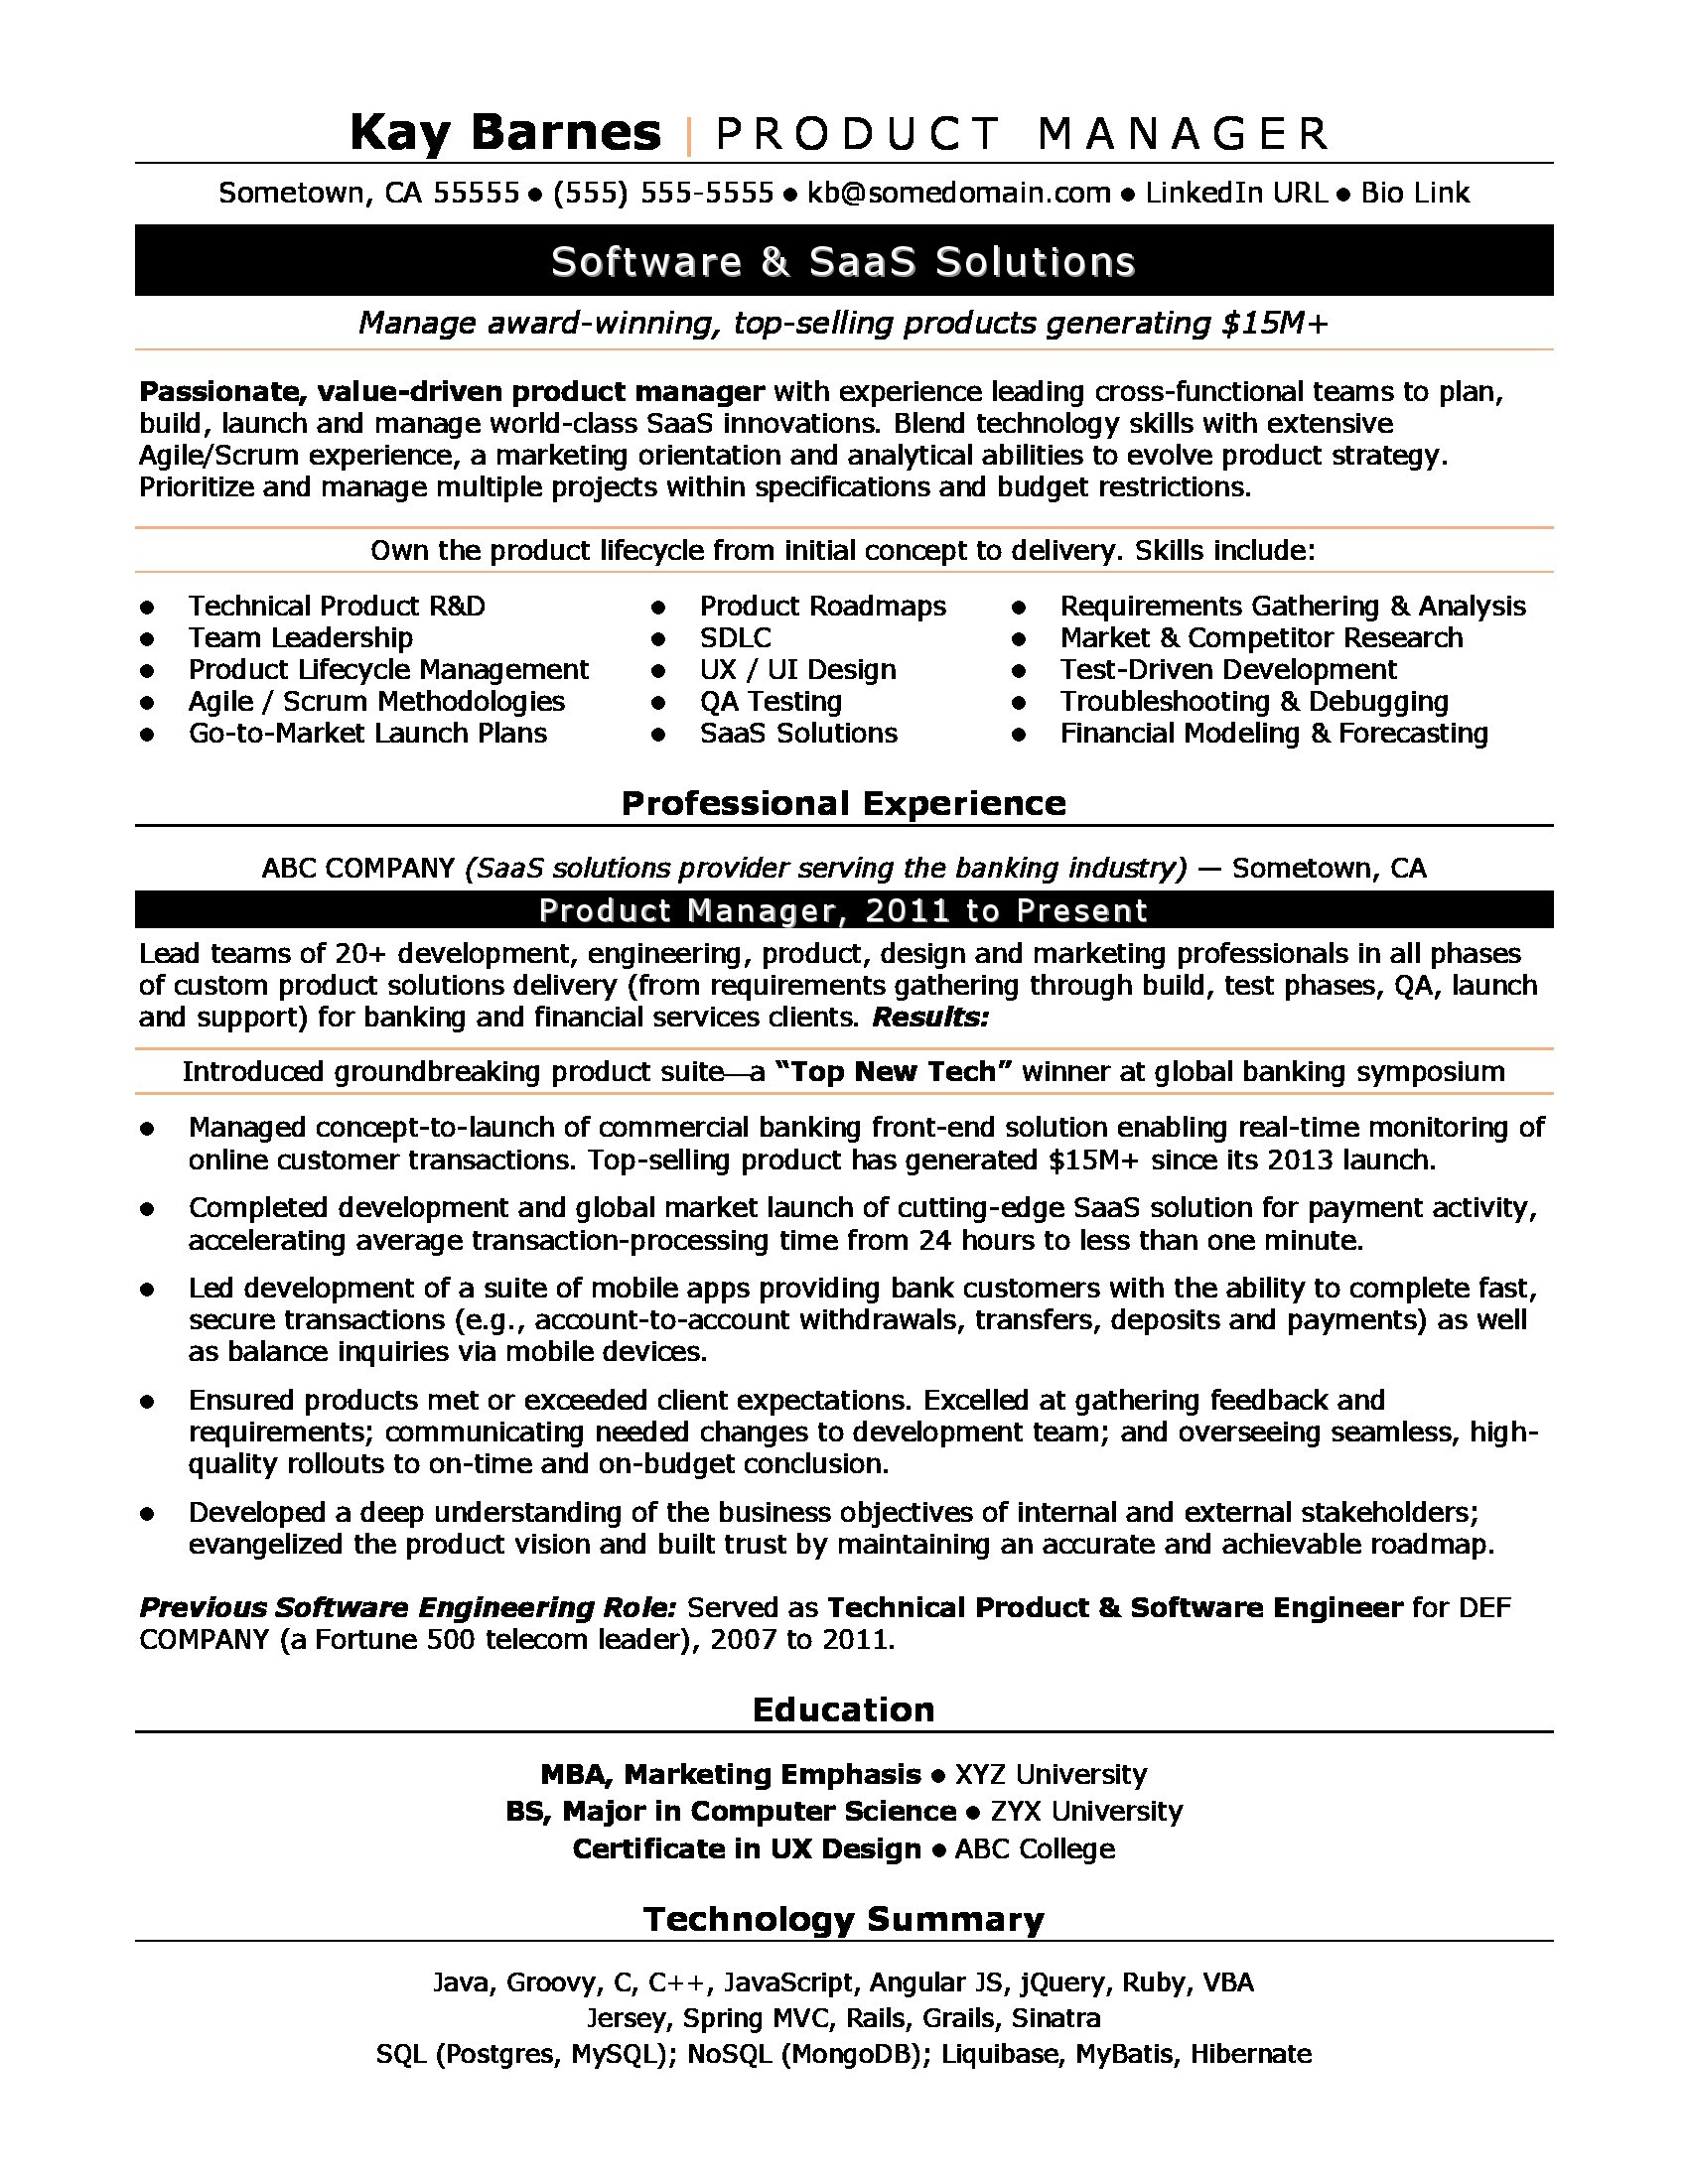 Product Manager Resume Sample Monster